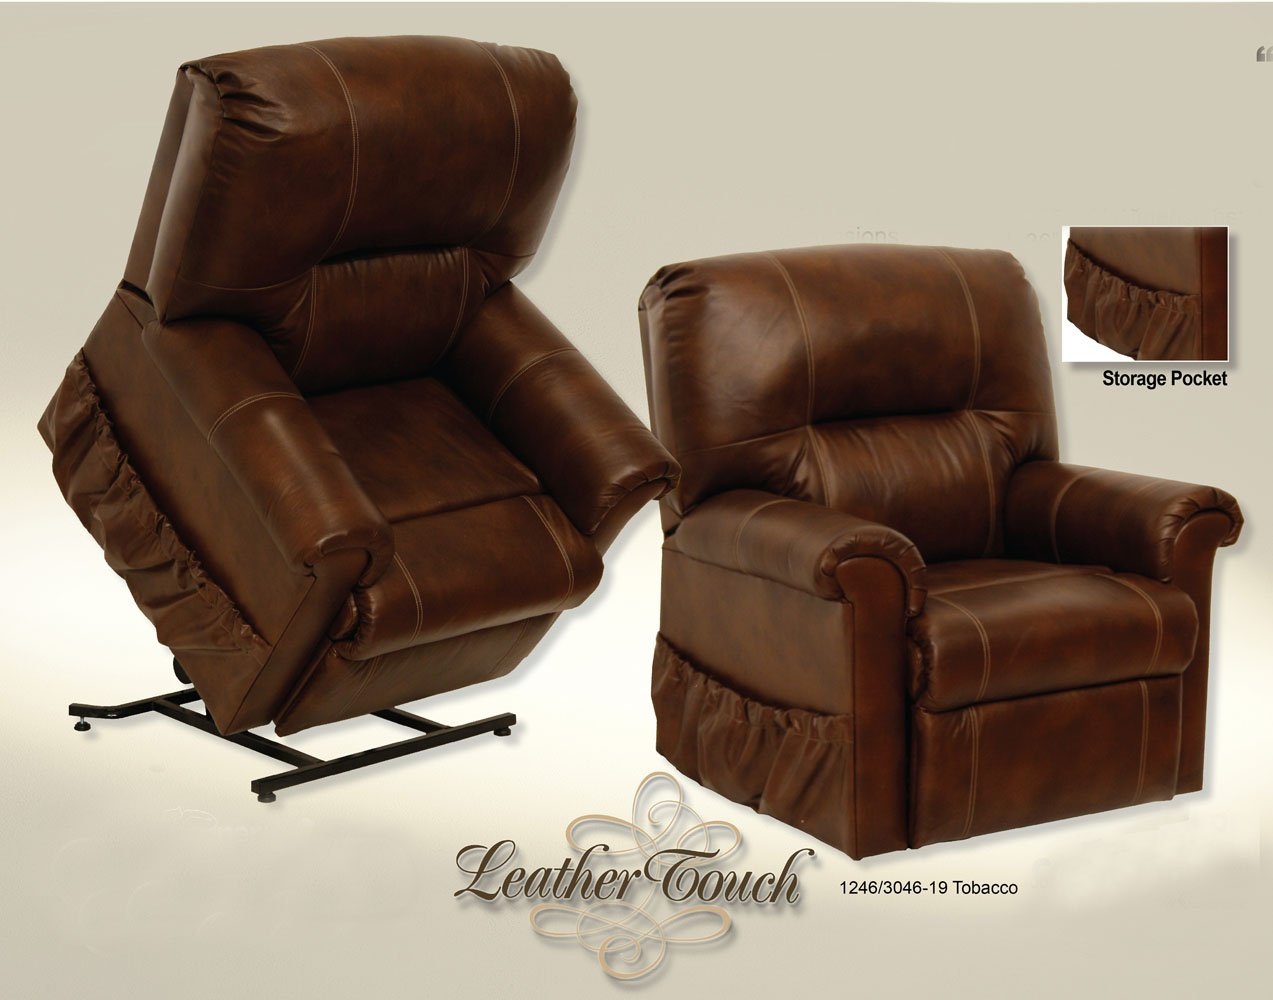 Our Best Leather Recliner Recommendation : are recliners bad for your back - islam-shia.org